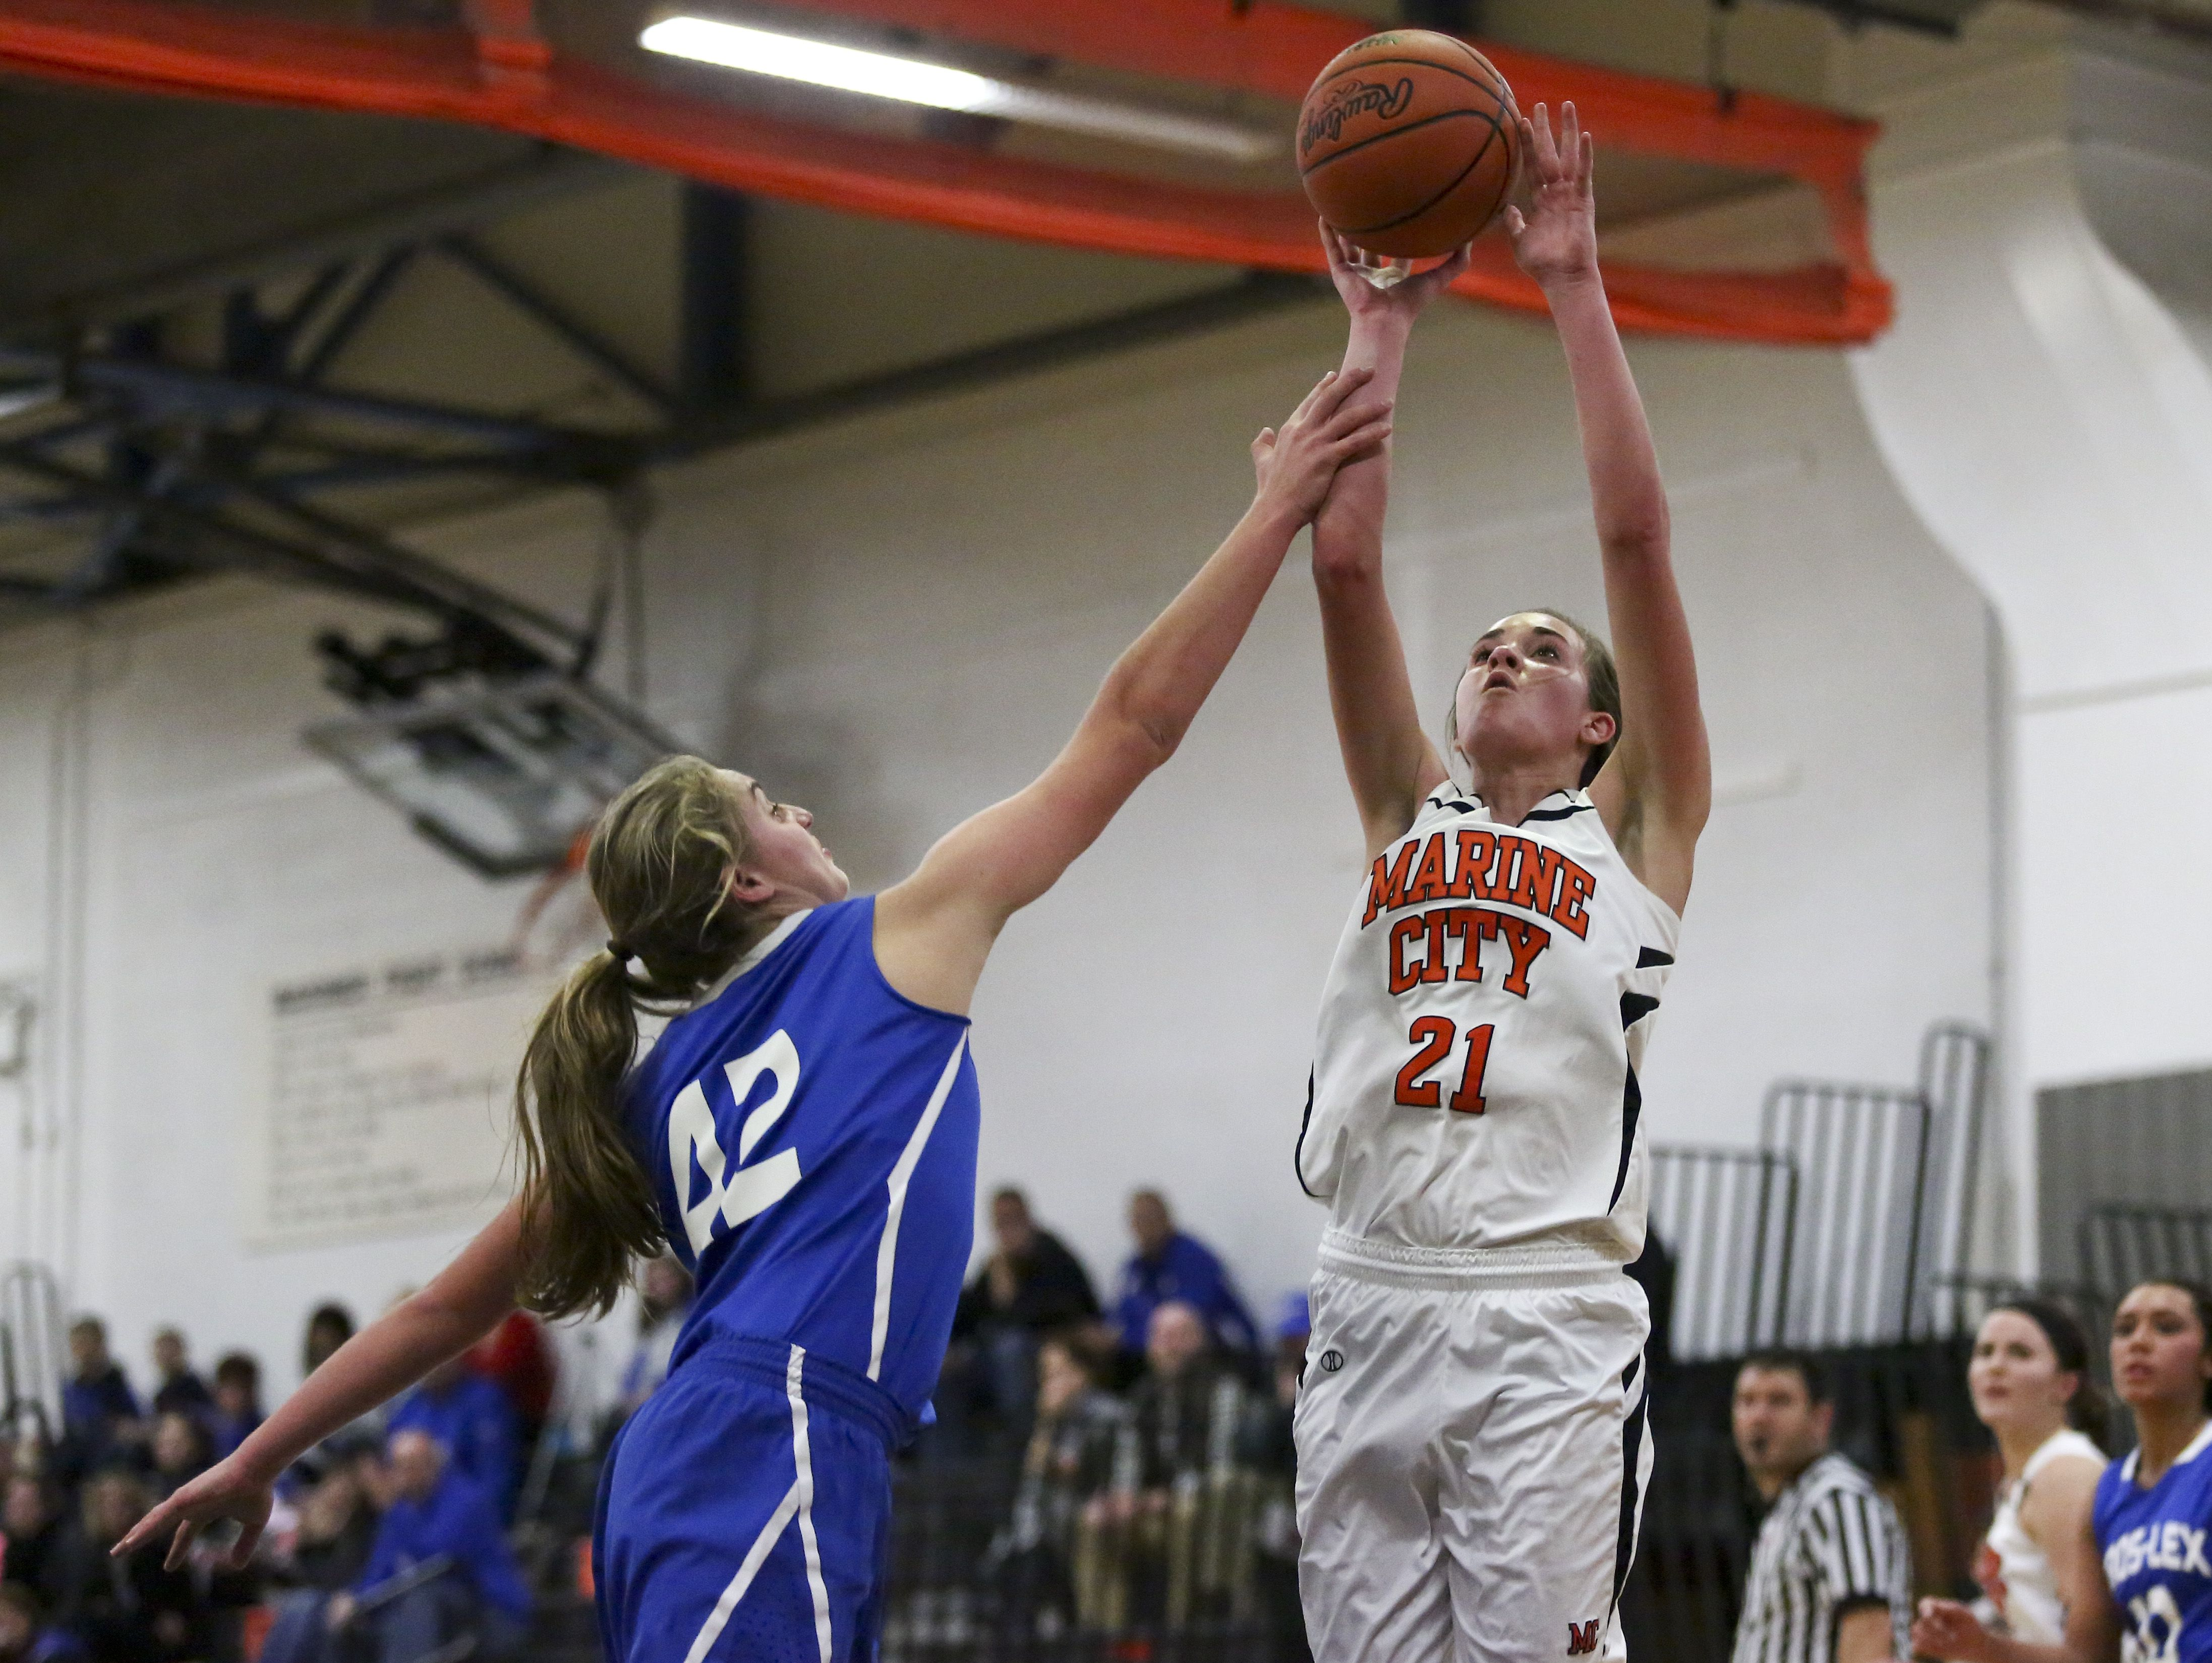 Marine City's Stephanie Abraham takes a shot over Cros-Lex's Rebecca Oden during a basketball game Tuesday, December 1, 2015 at Marine City High School.